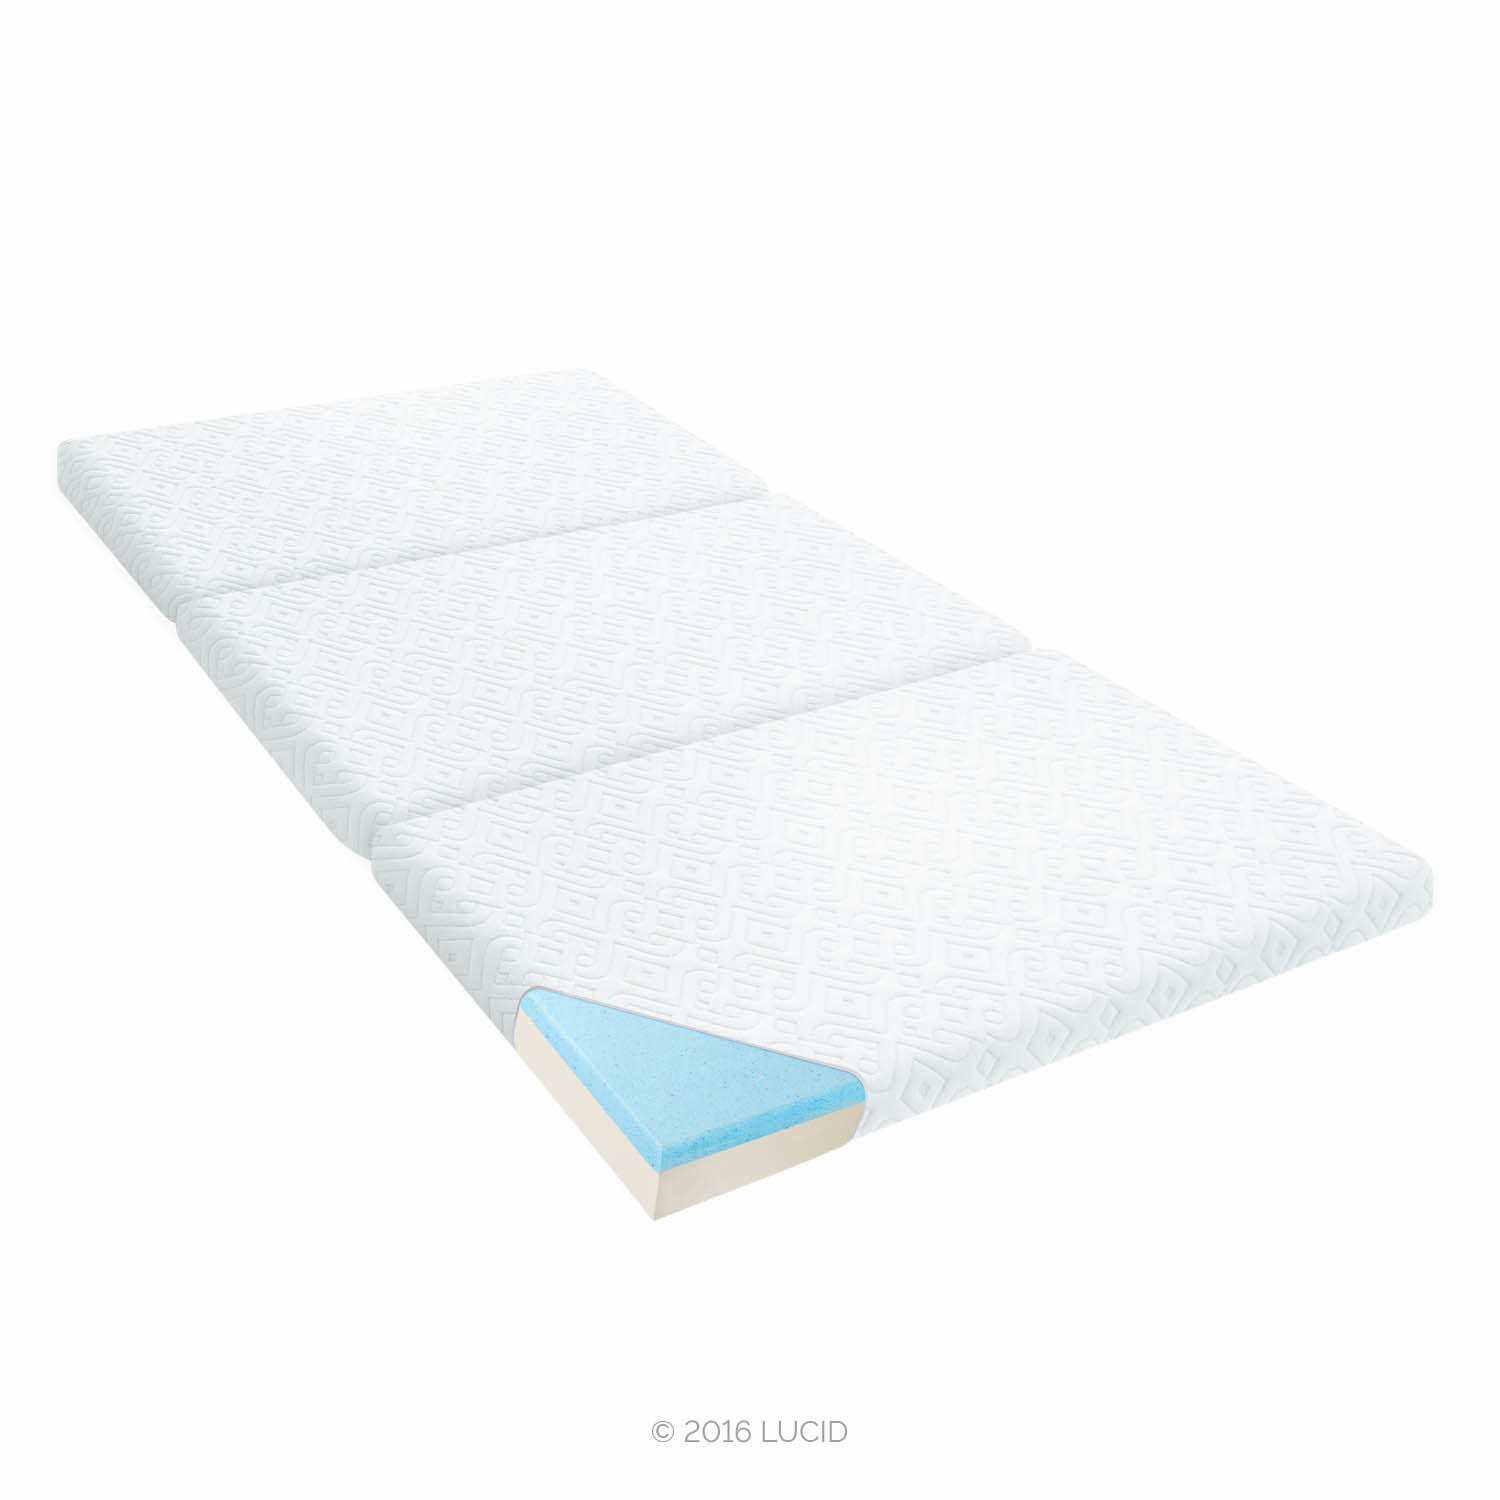 lucid folding foam memory mattress gel floor sleeping mats walmart ip twin com inch mat